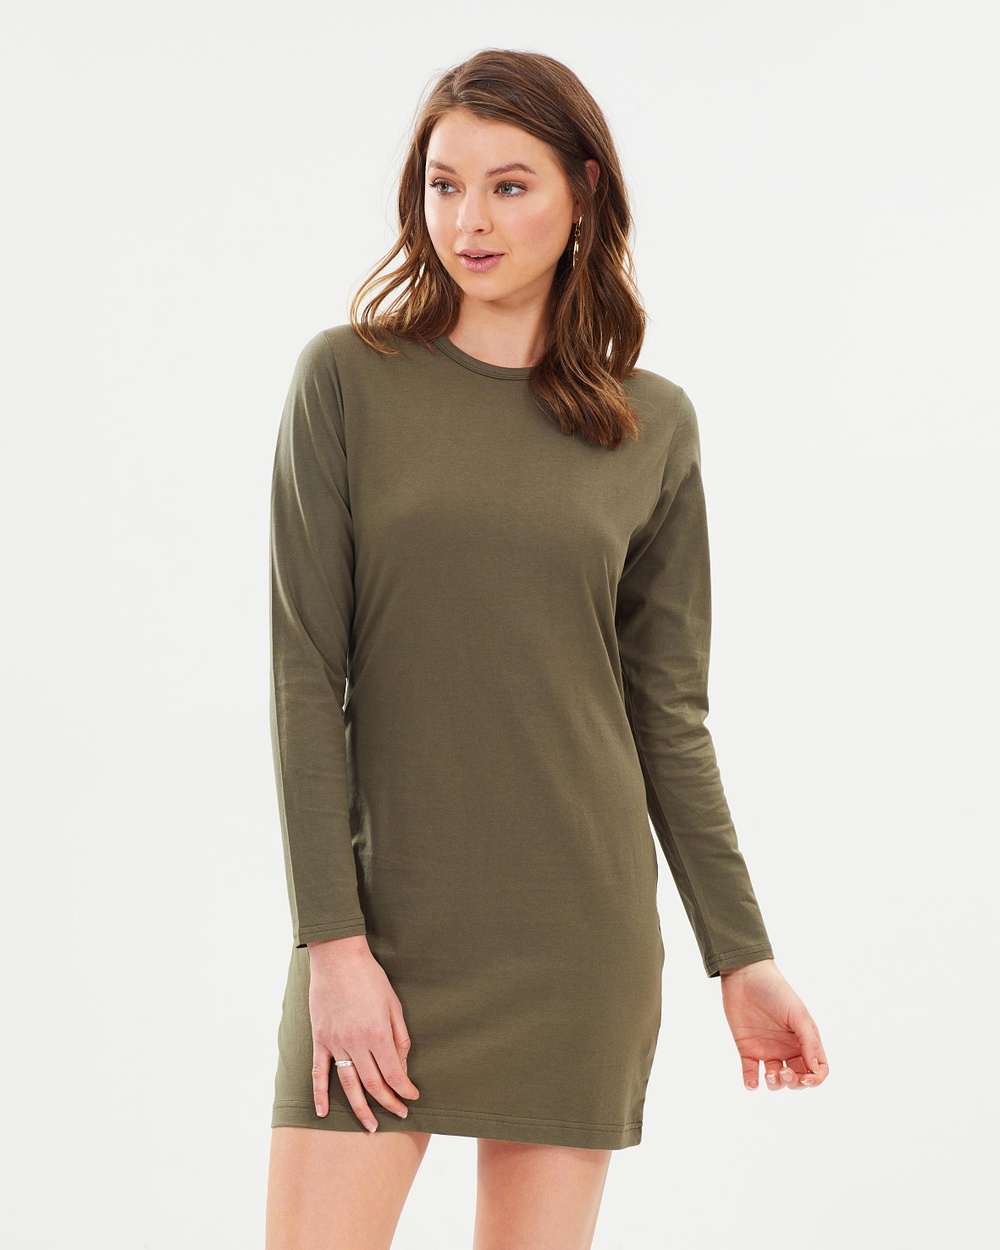 Nude Lucy Pia Long Sleeve Dress Dresses Khaki Pia Long Sleeve Dress